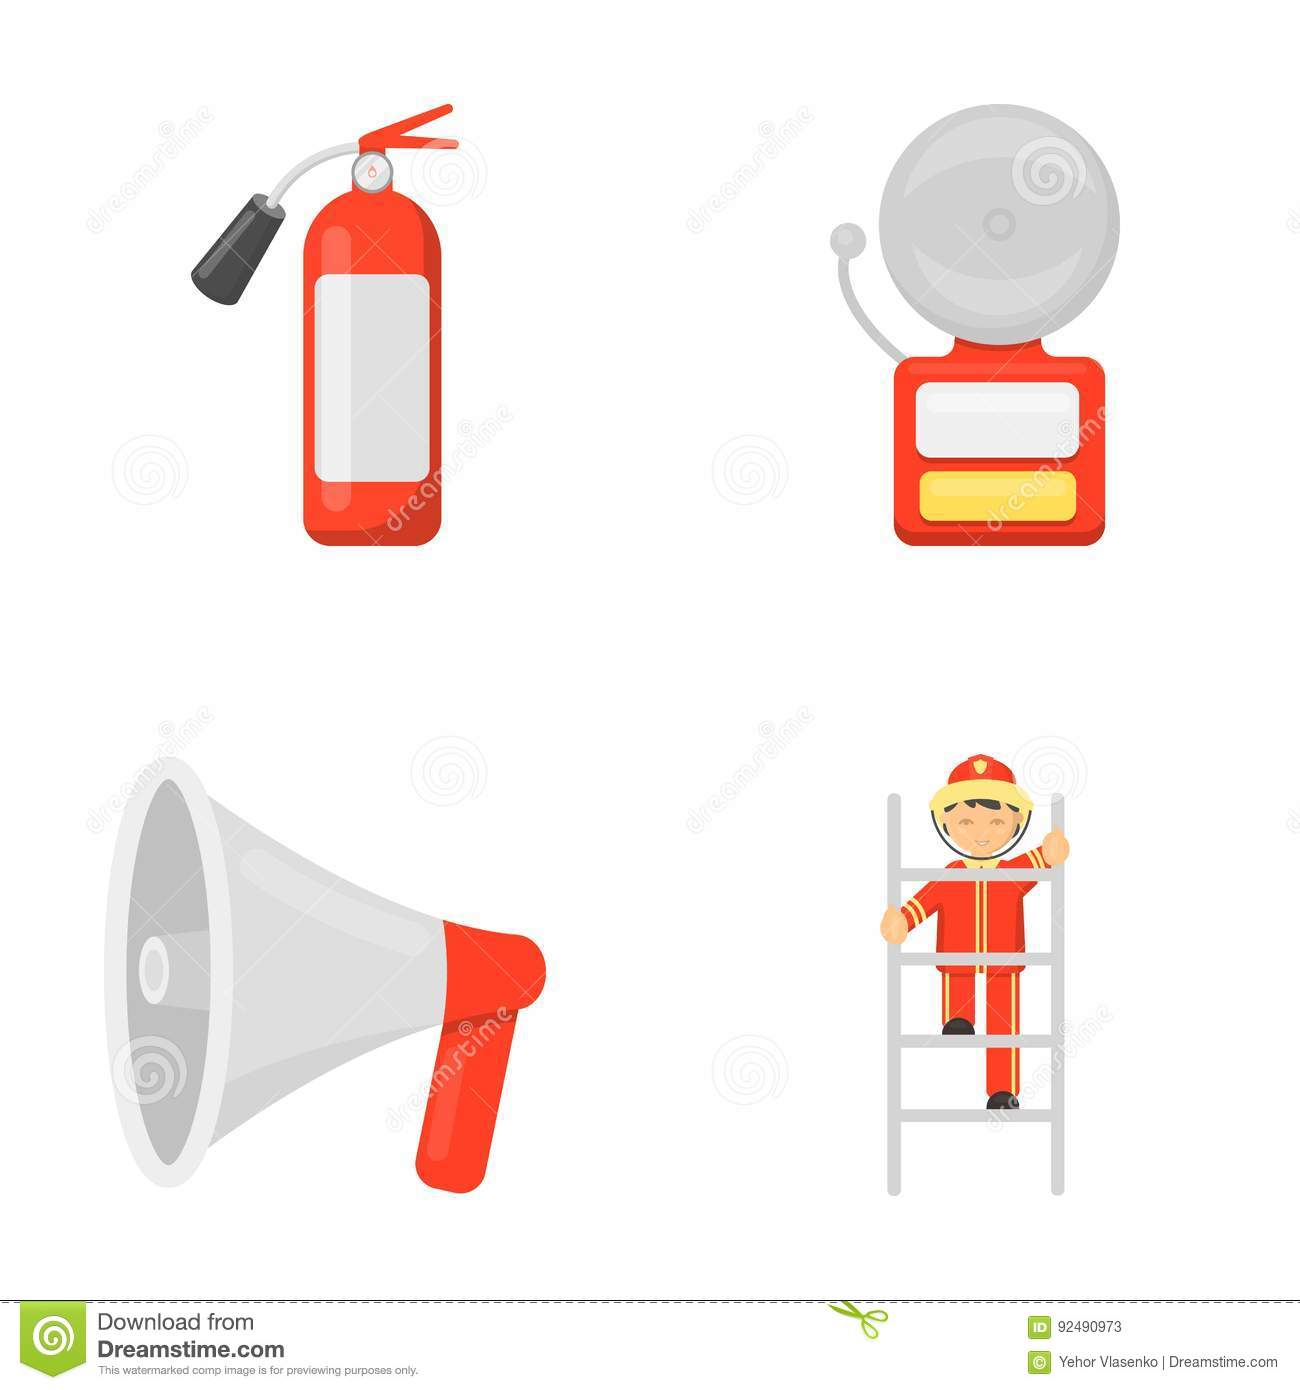 Cartoon fire extinguisher stock illustrations 866 cartoon fire fire extinguisher alarm megaphone fireman on the stairs fire departmentset set collection buycottarizona